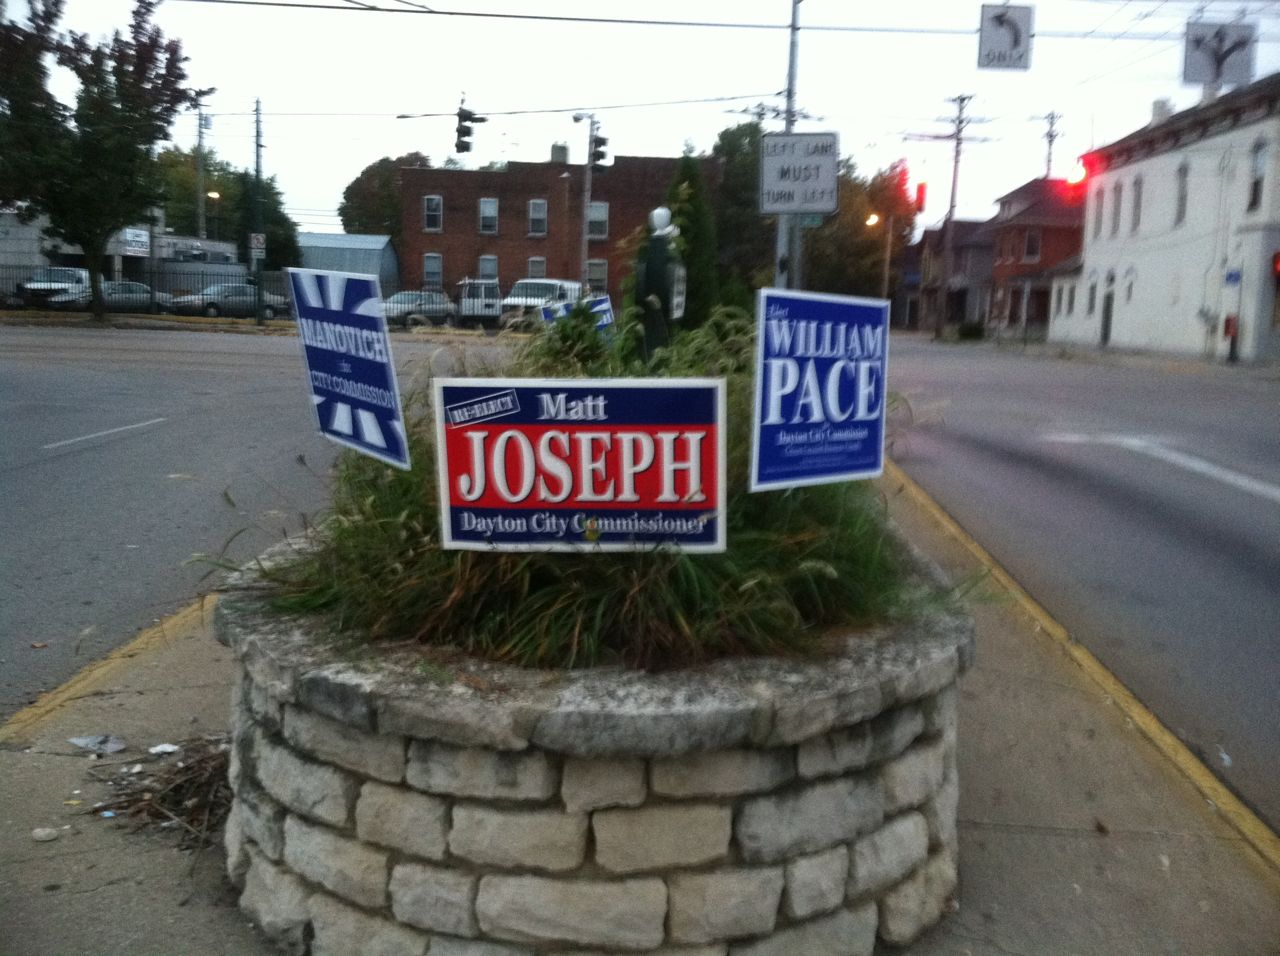 Illegally placed campaign signs in Dayton OH in the public right of way